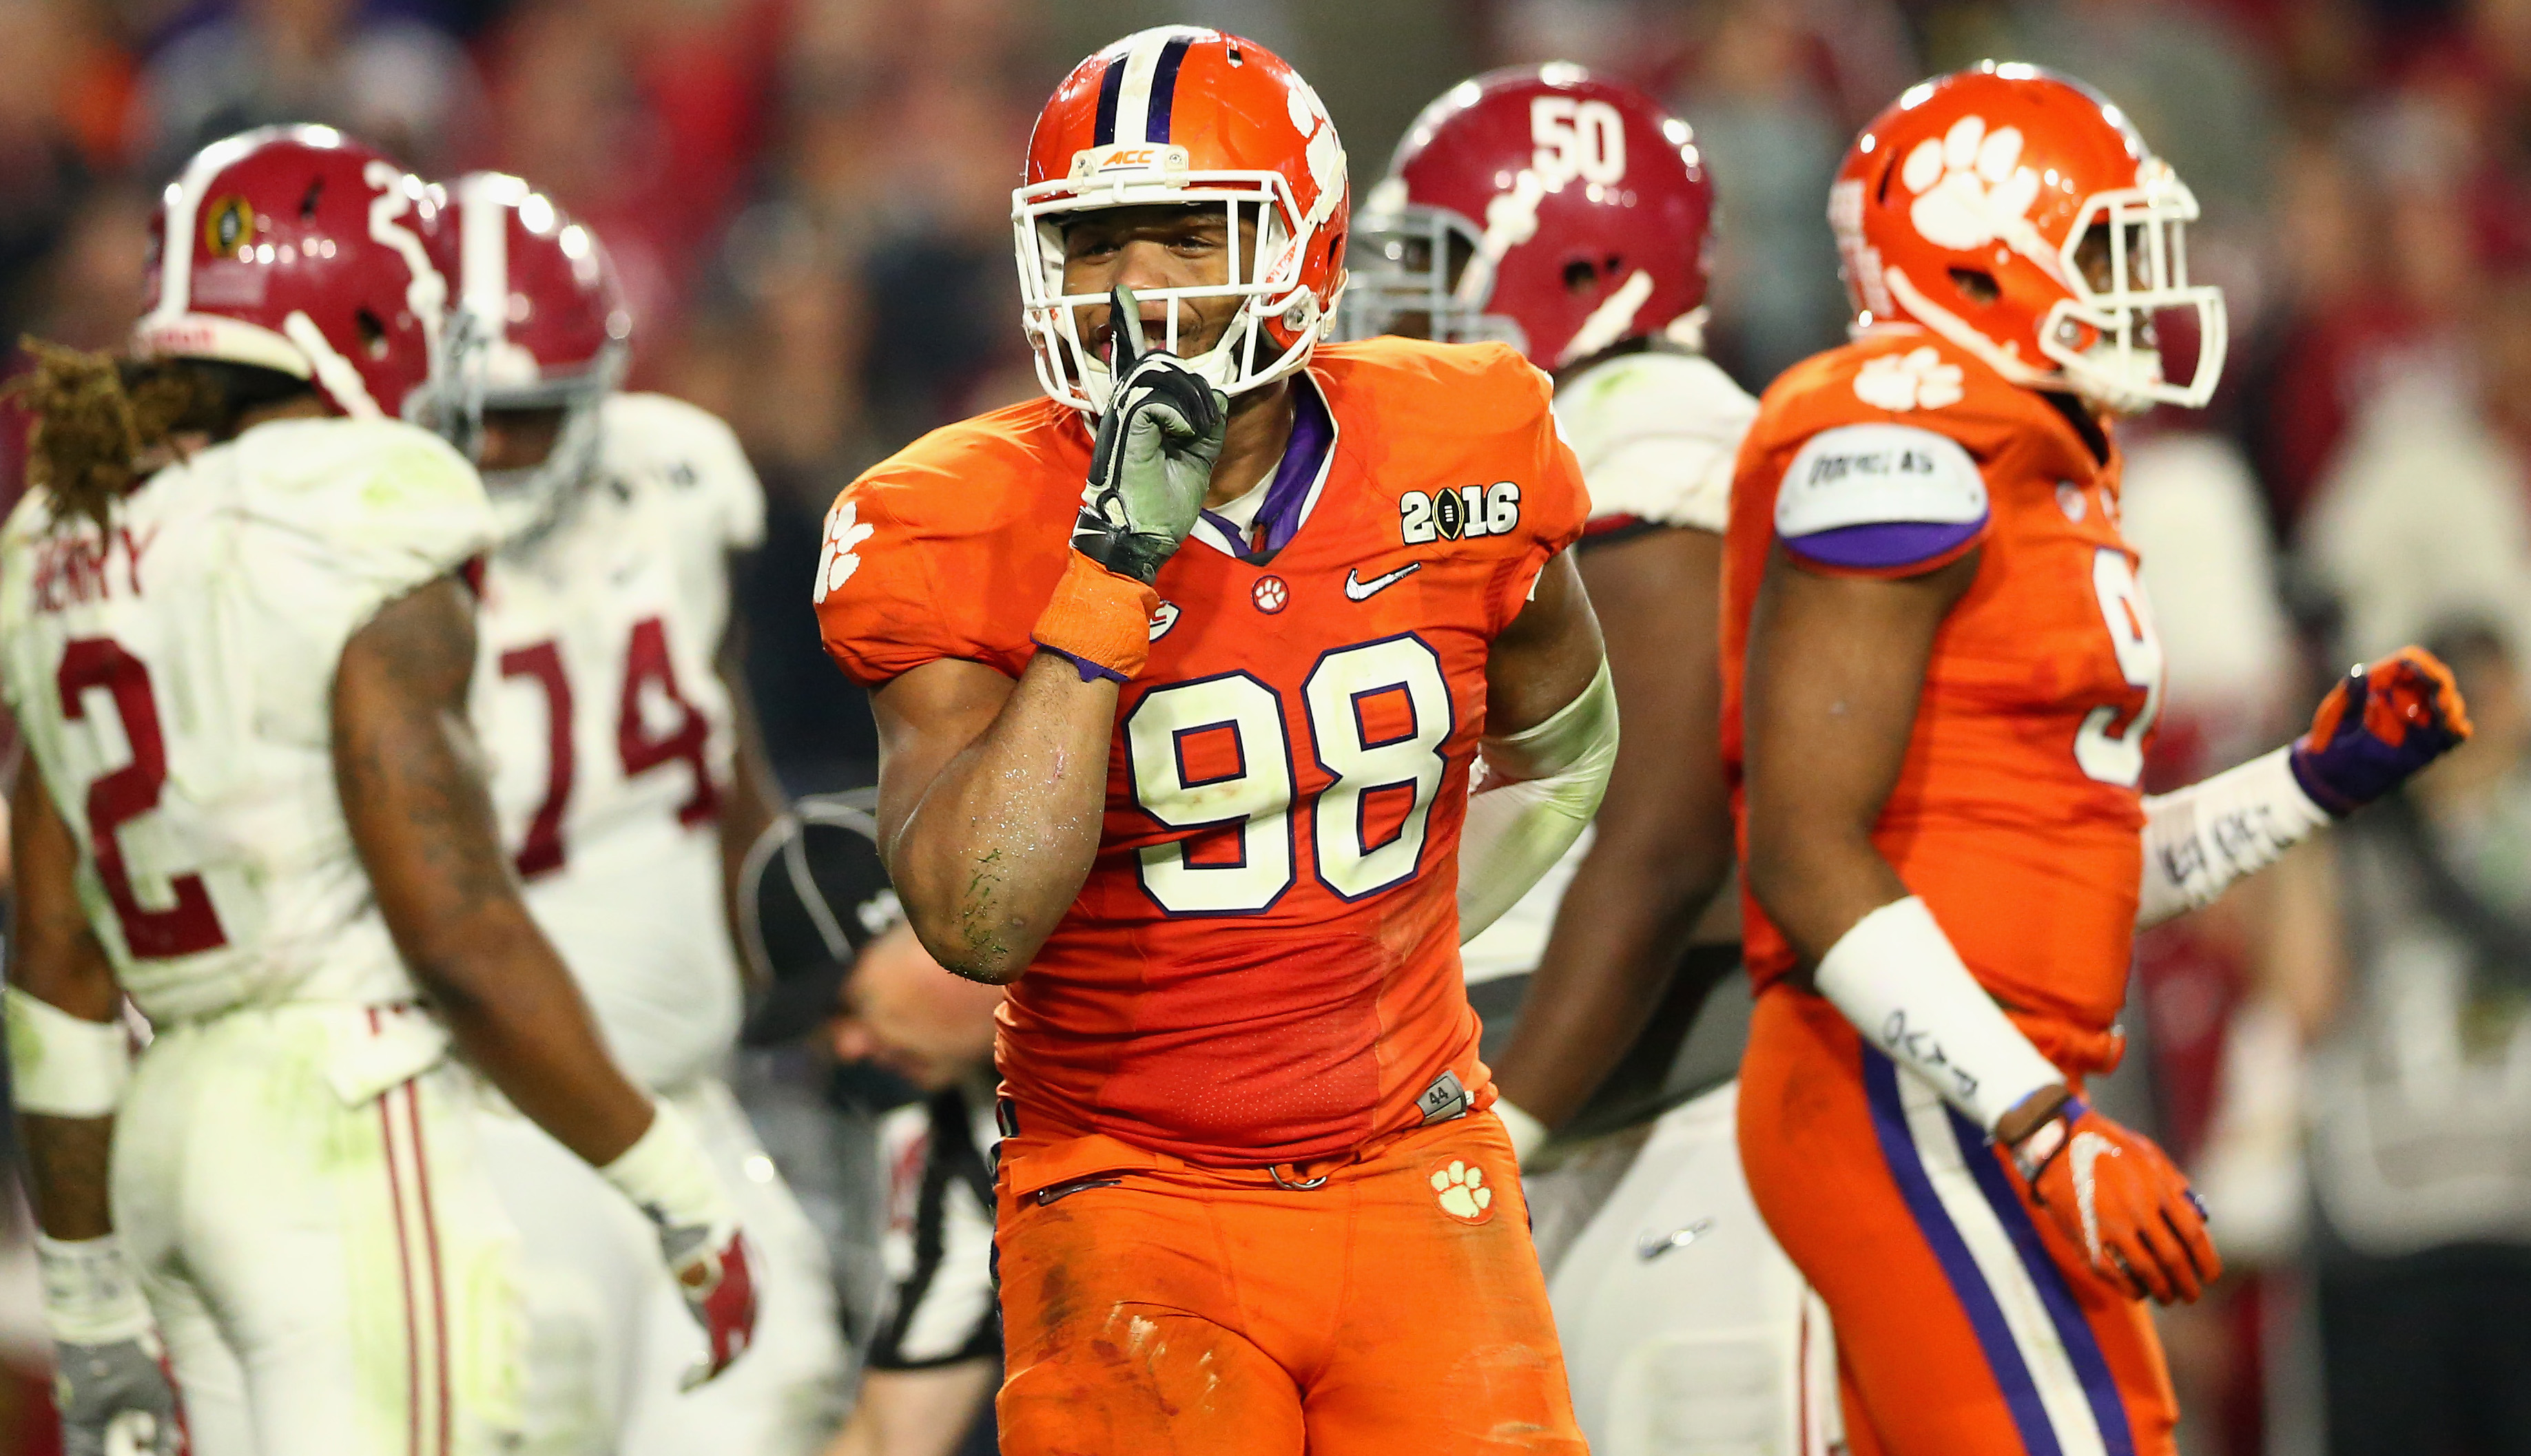 GLENDALE, AZ - JANUARY 11:  Kevin Dodd #98 of the Clemson Tigers reacts after a play in the second quarter against the Alabama Crimson Tide during the 2016 College Football Playoff National Championship Game at University of Phoenix Stadium on January 11, 2016 in Glendale, Arizona.  (Photo by Ronald Martinez/Getty Images)